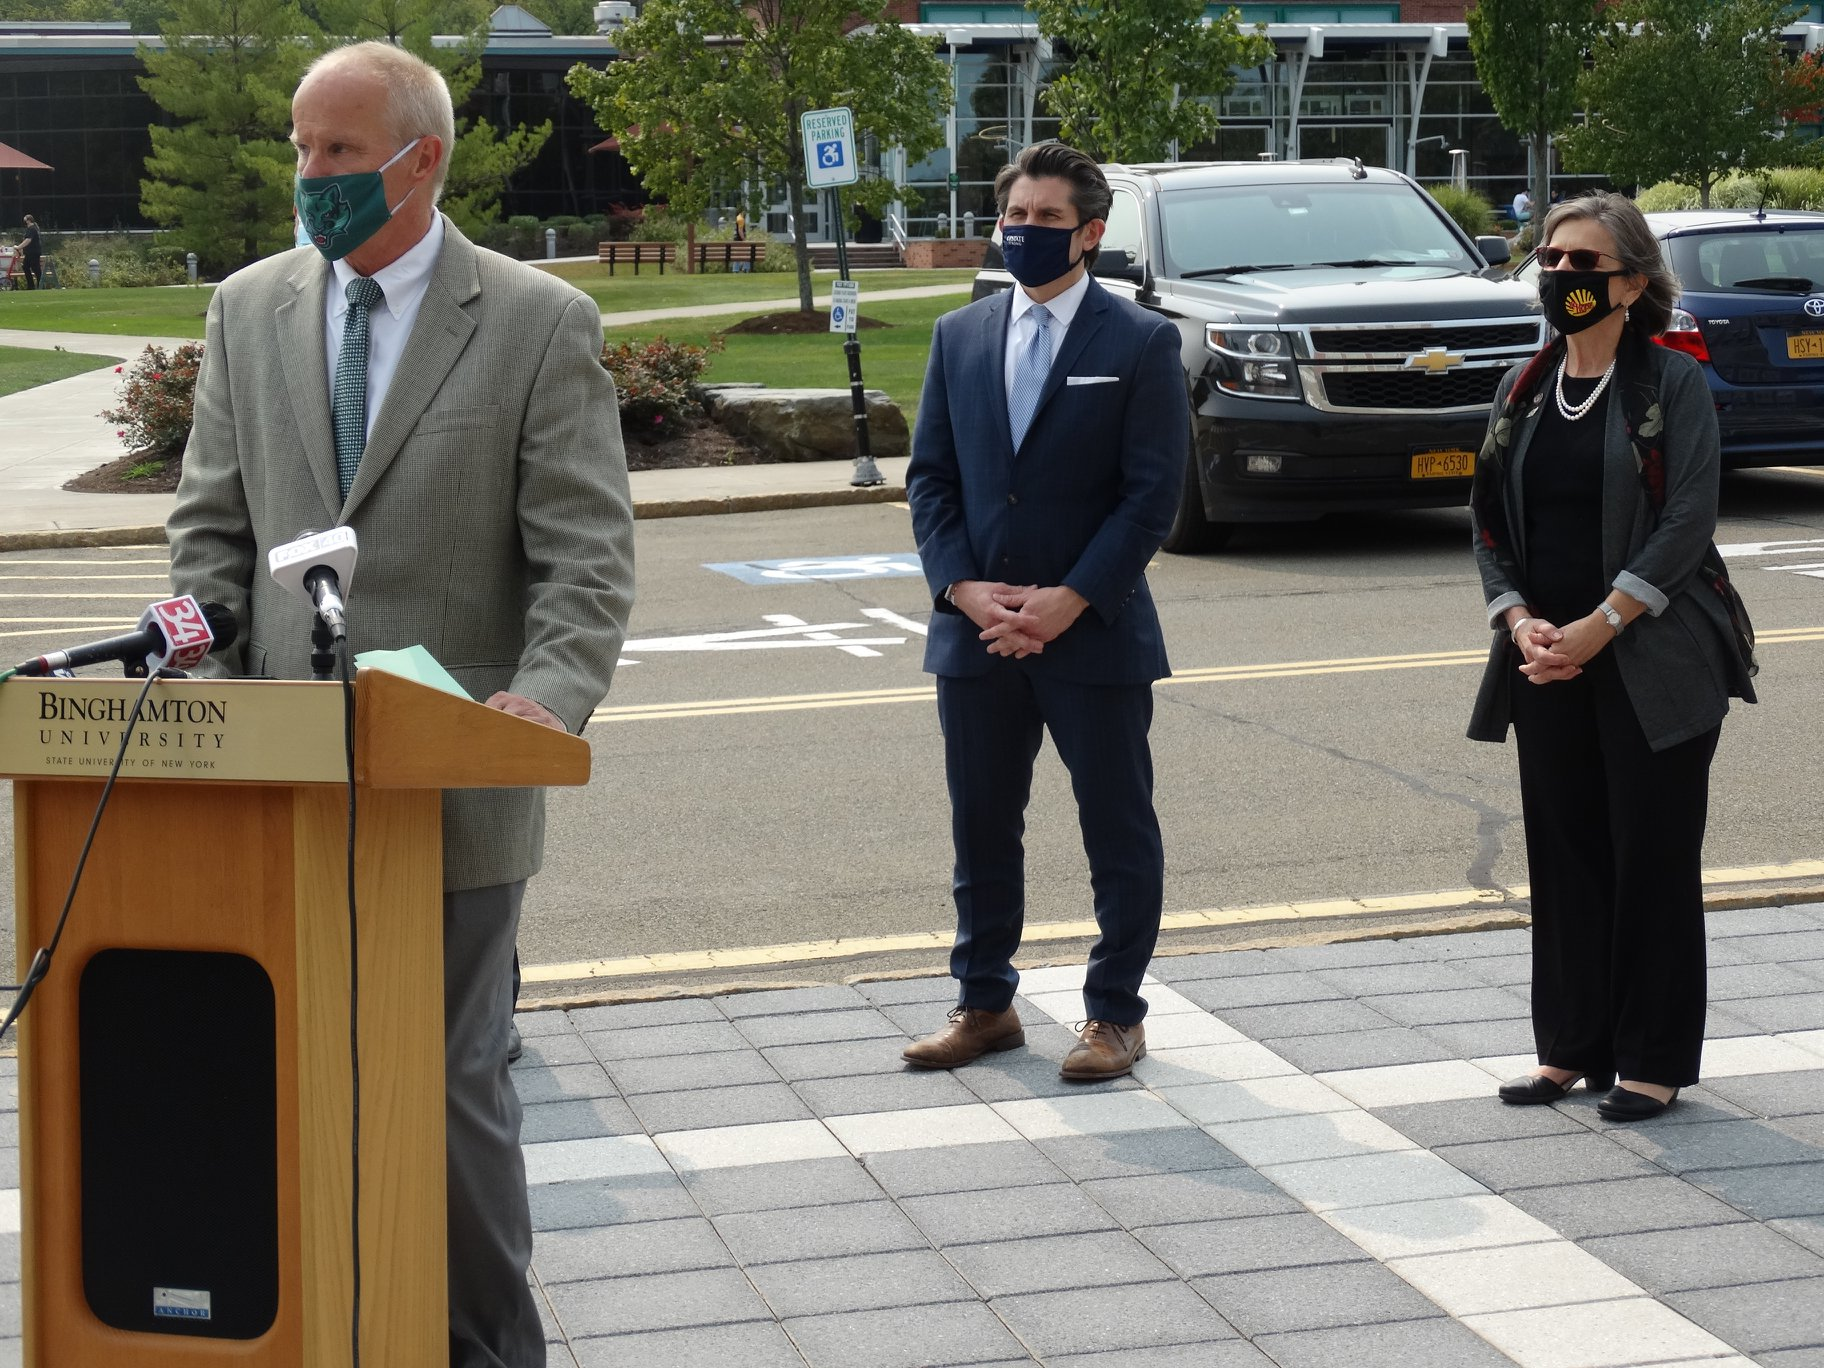 September 16, 2020 – Binghamton University President speaks as he and Assemblywoman Lupardo welcome SUNY Chancellor Jim Malatras to campus.